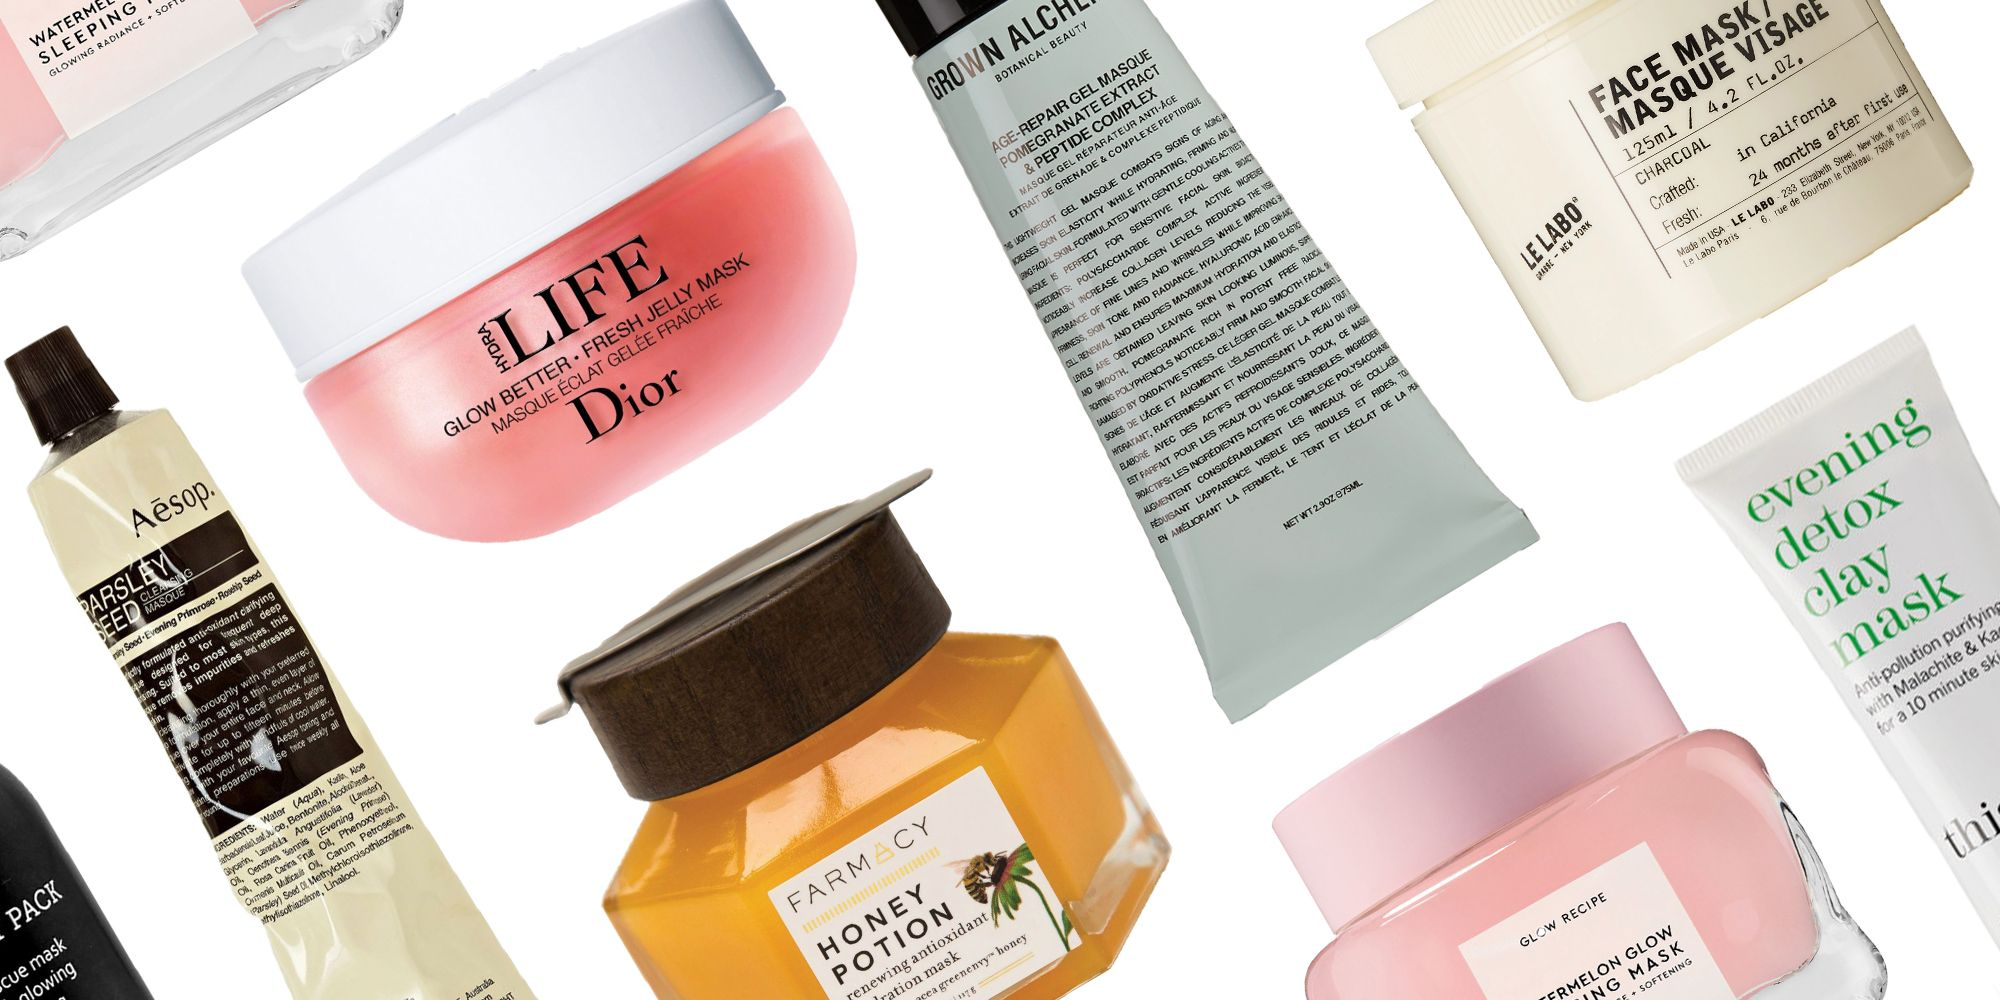 Best Face Masks 2019 - 16 Home Face Mask Treatments for All